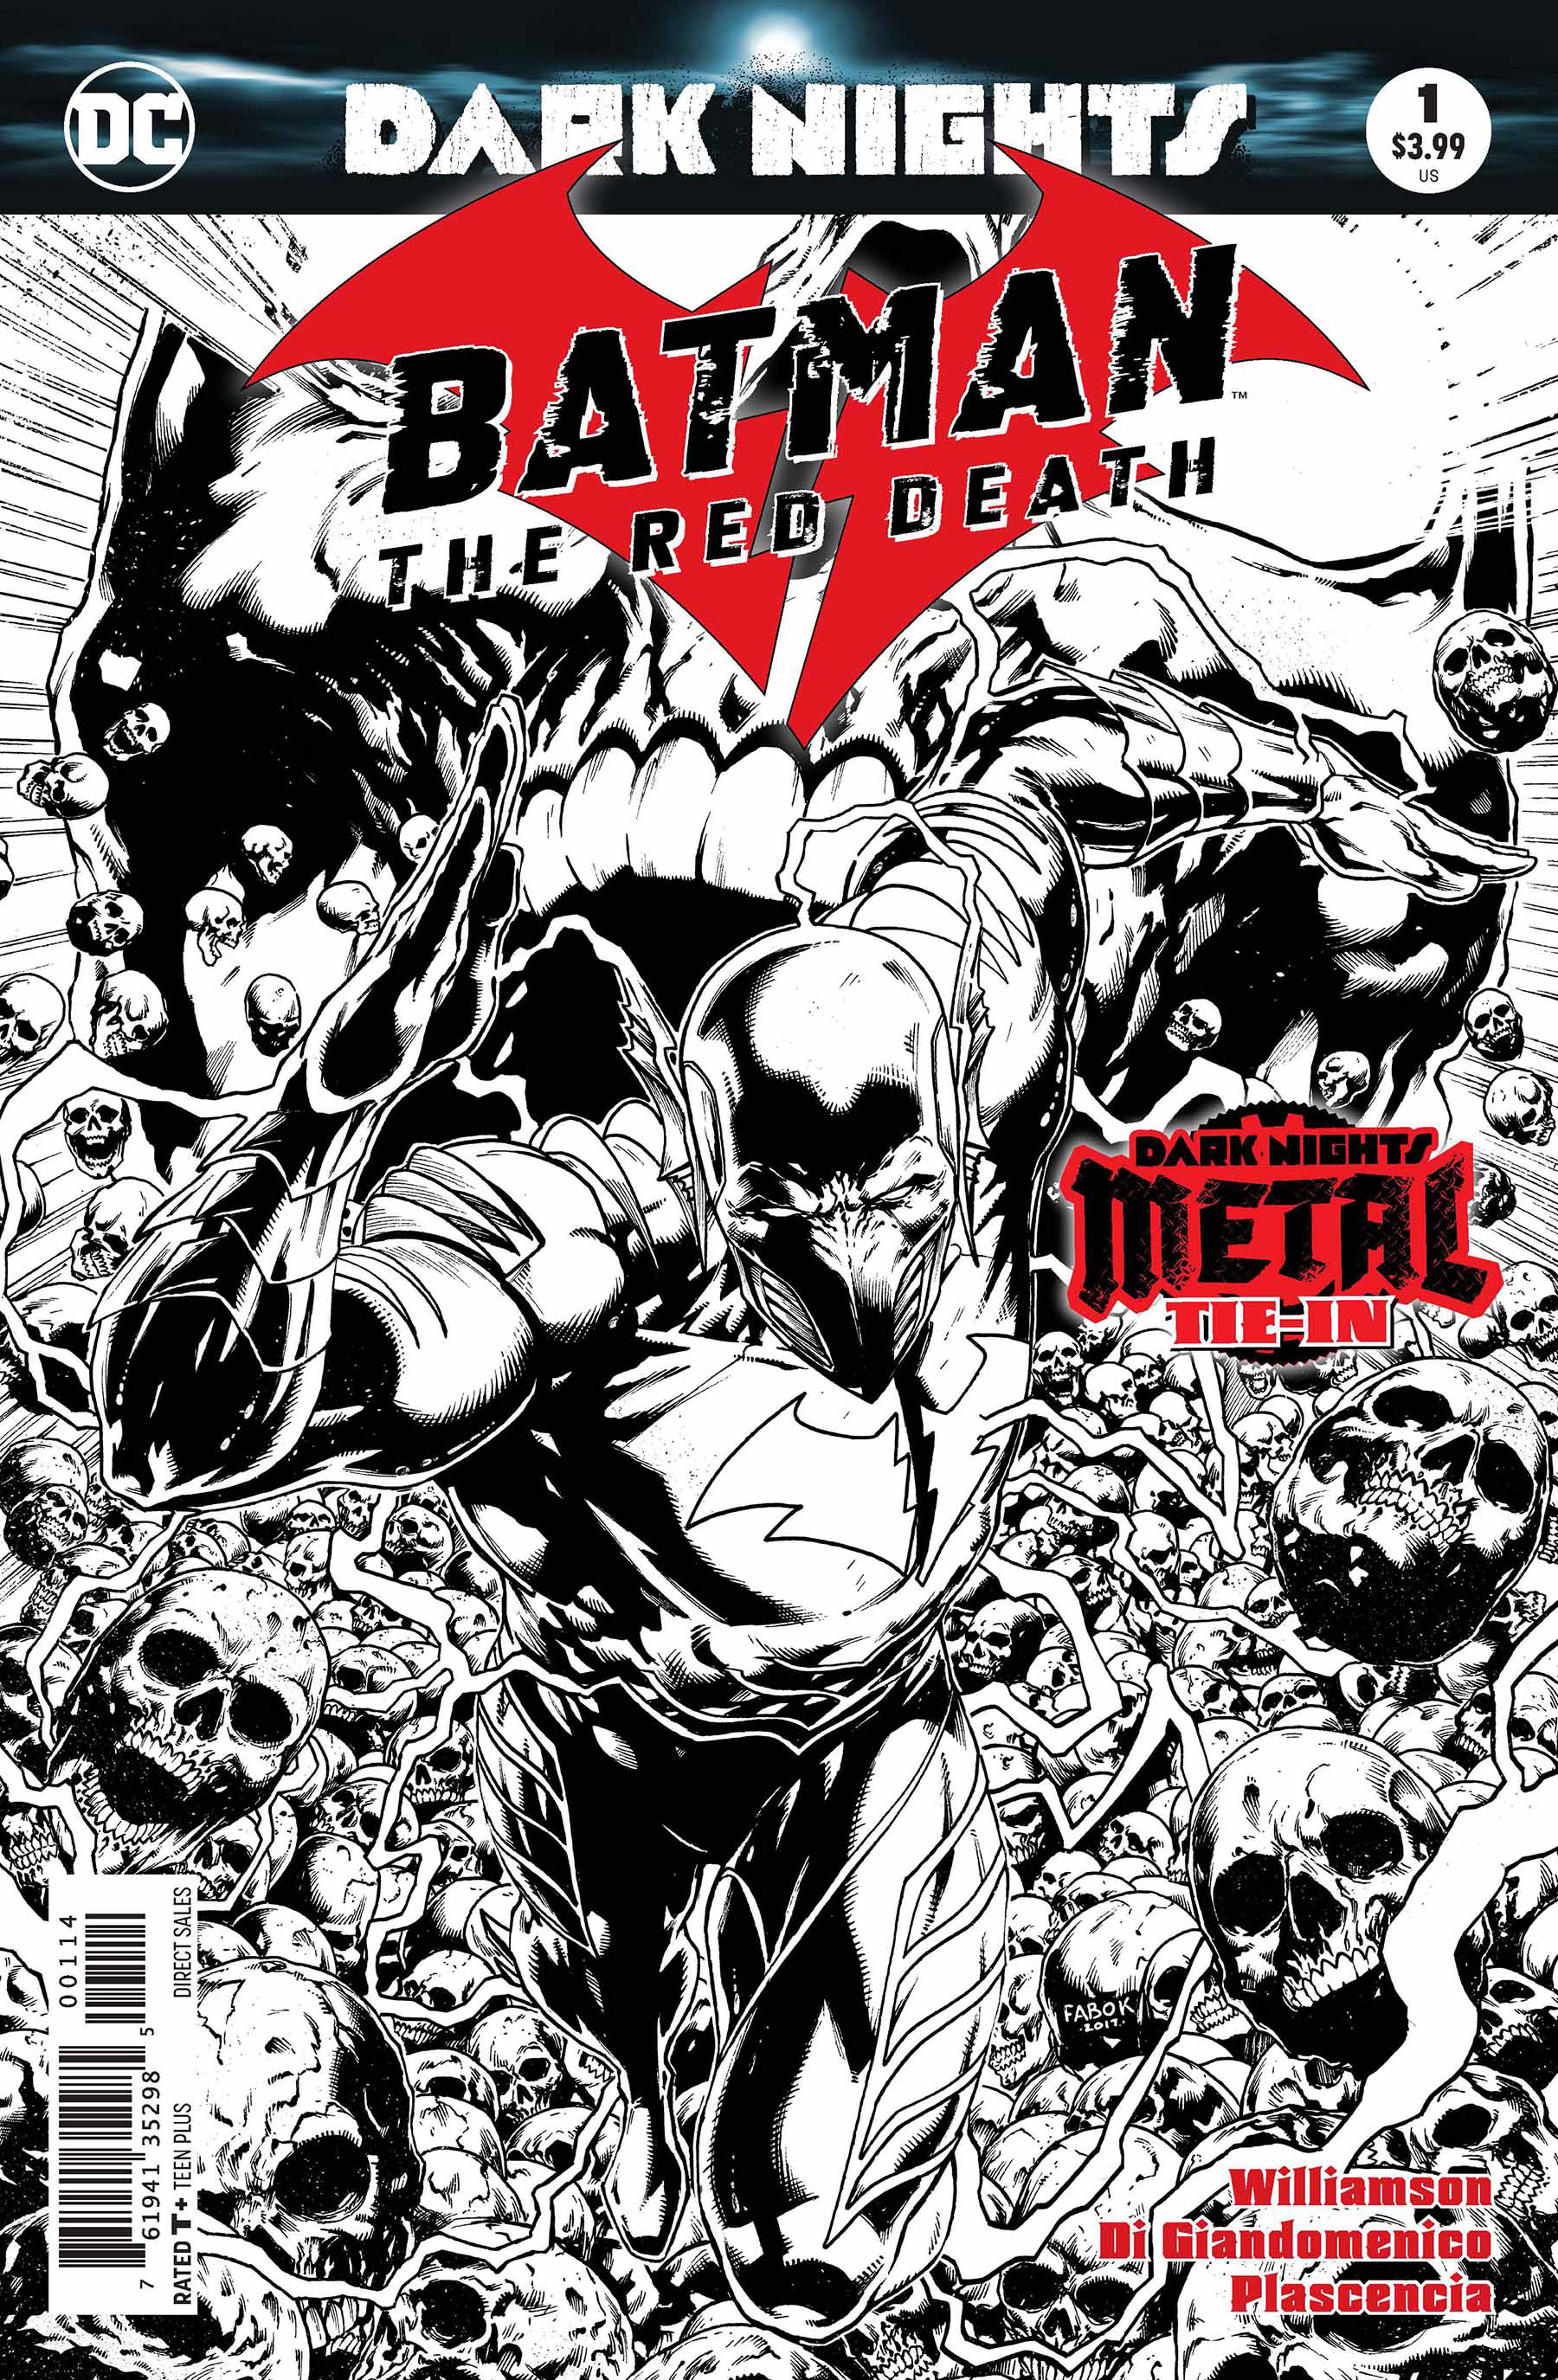 BATMAN THE RED DEATH #1 4TH PTG METAL